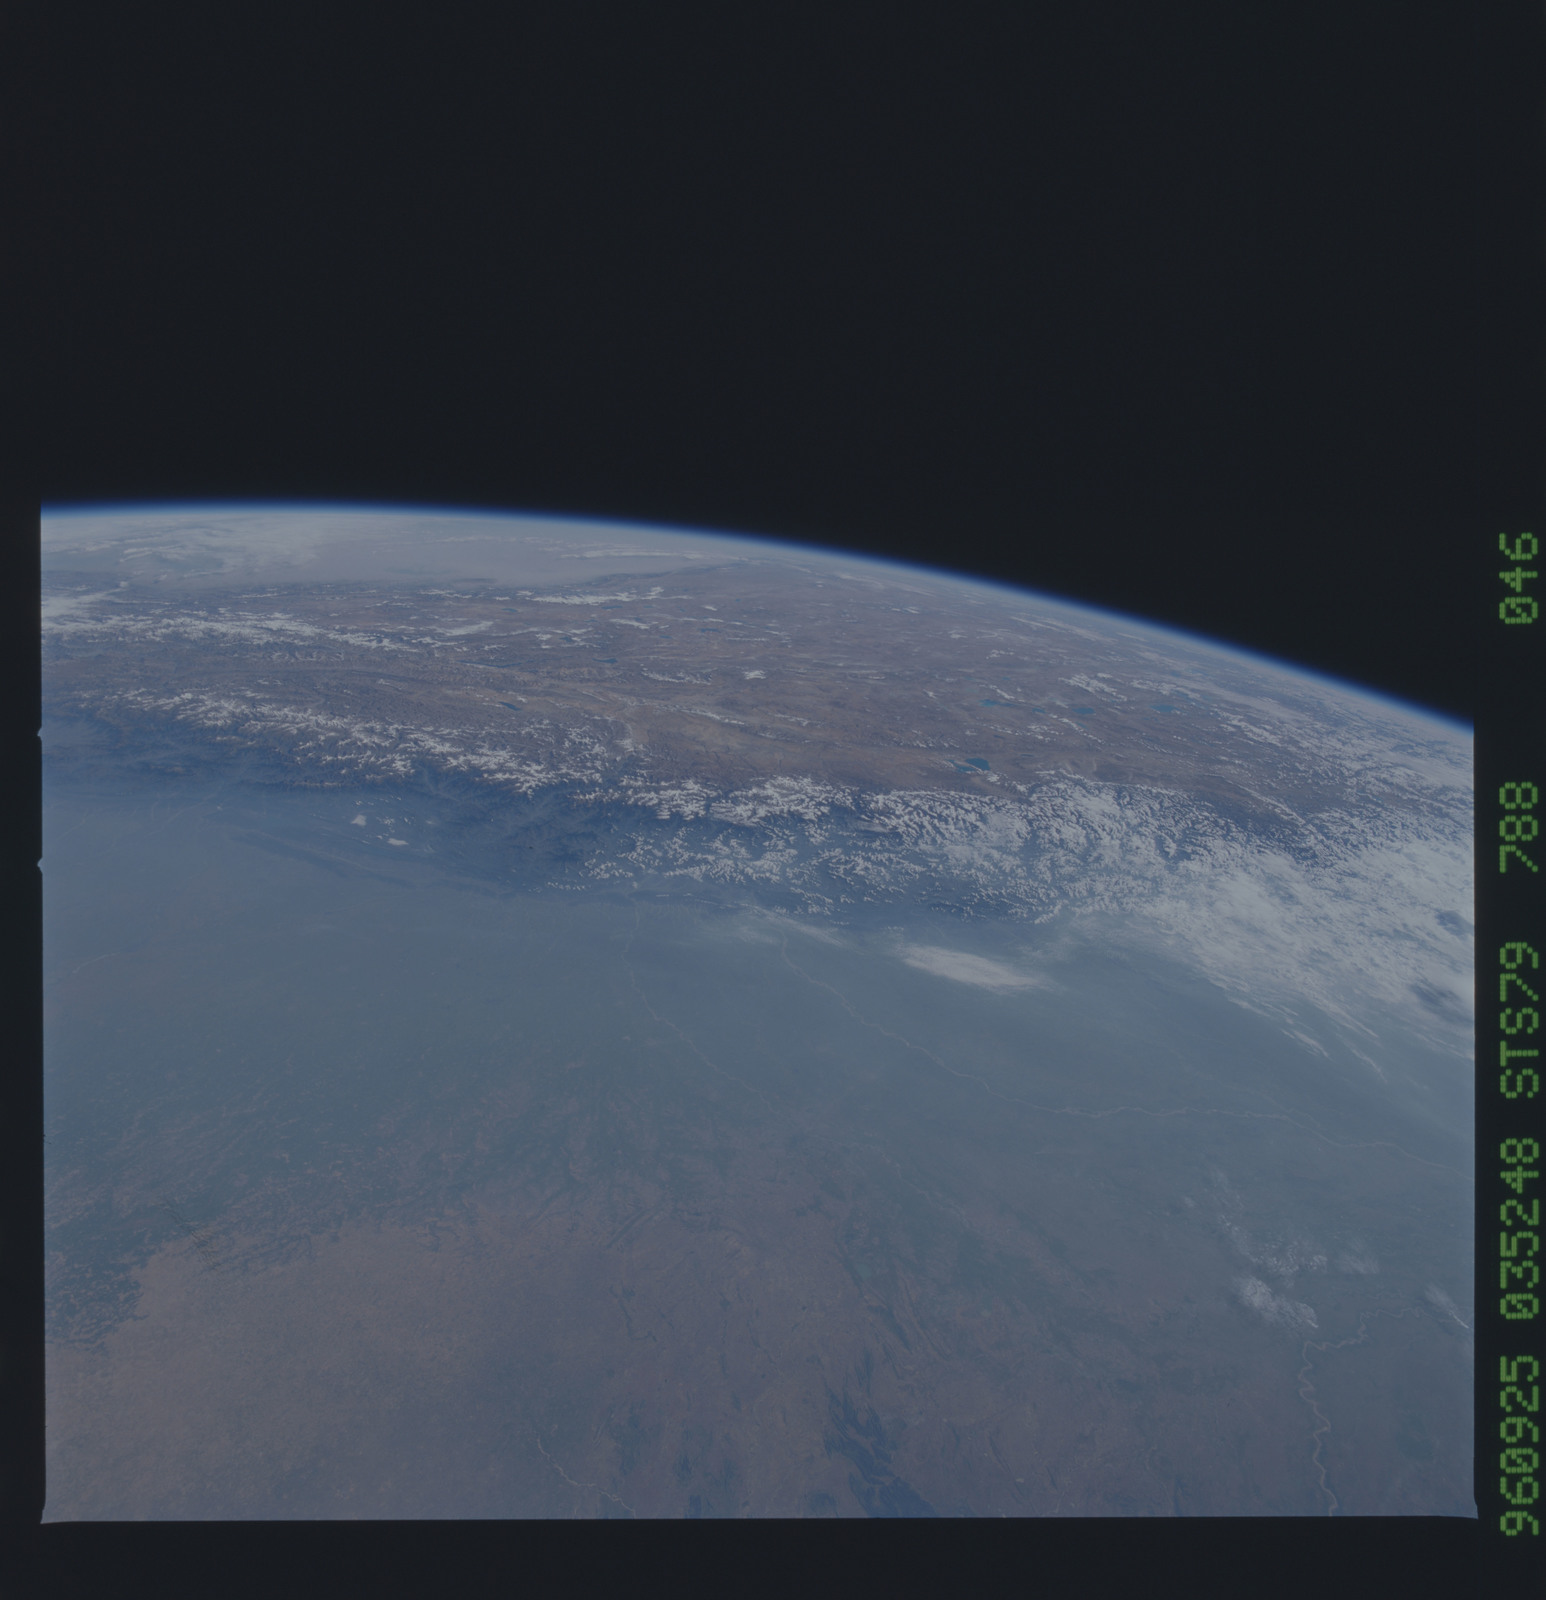 STS079-788-046 - STS-079 - Earth observations taken during STS-79 mission